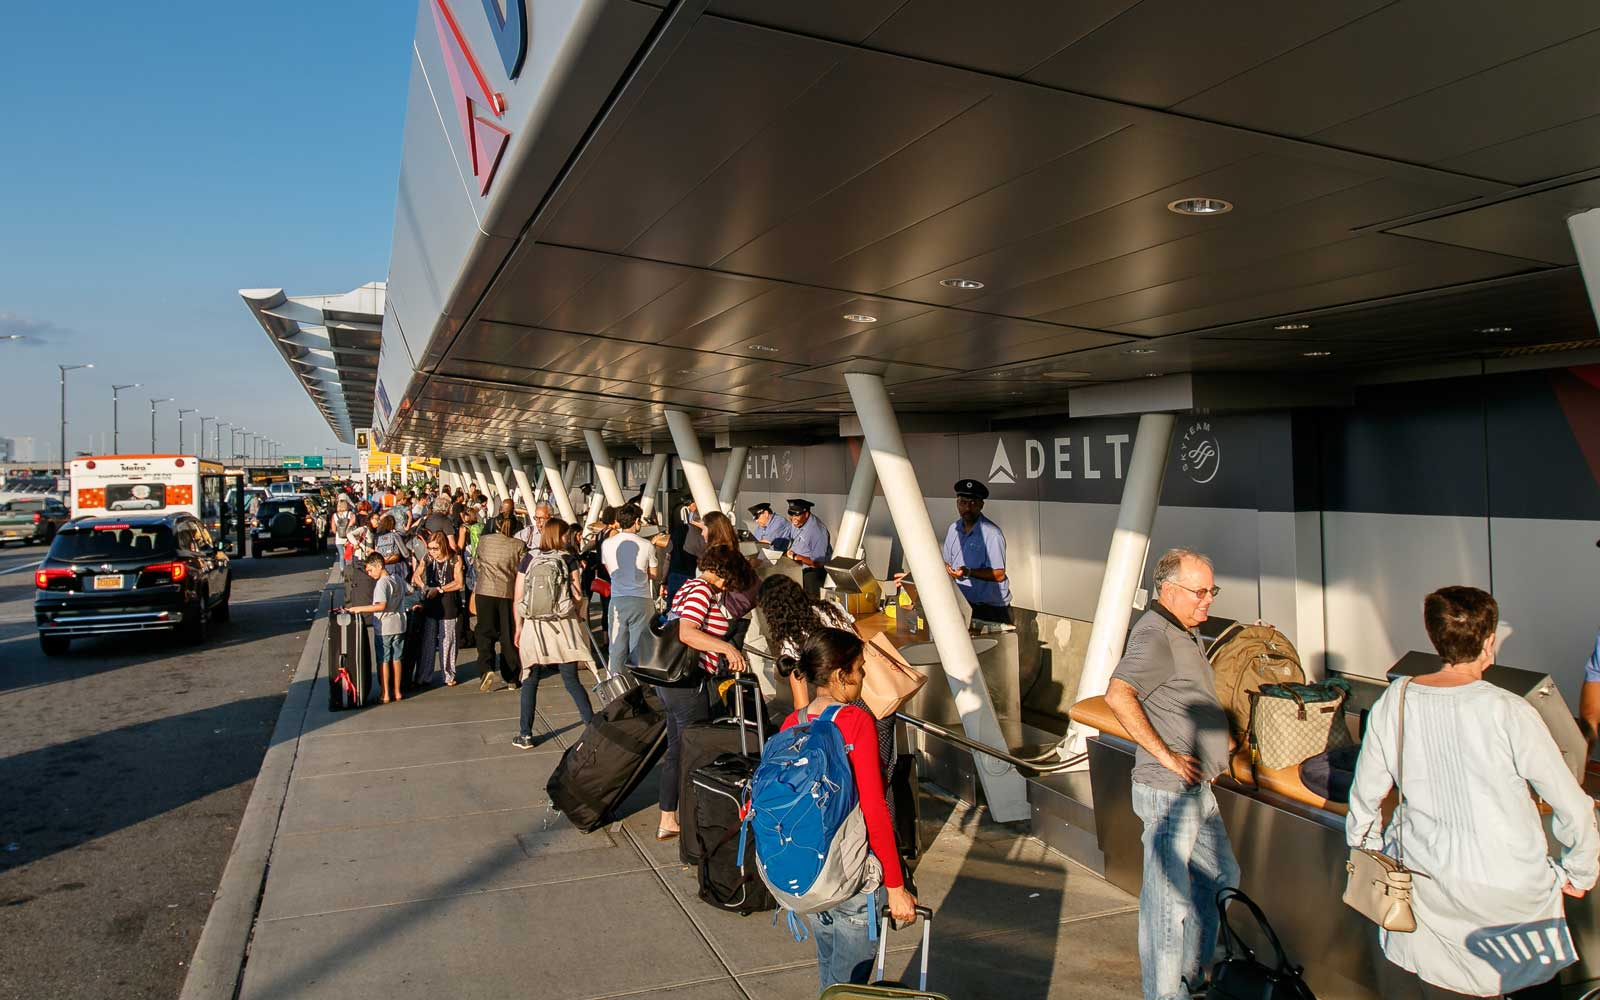 Curbside check-in for Delta at JFK